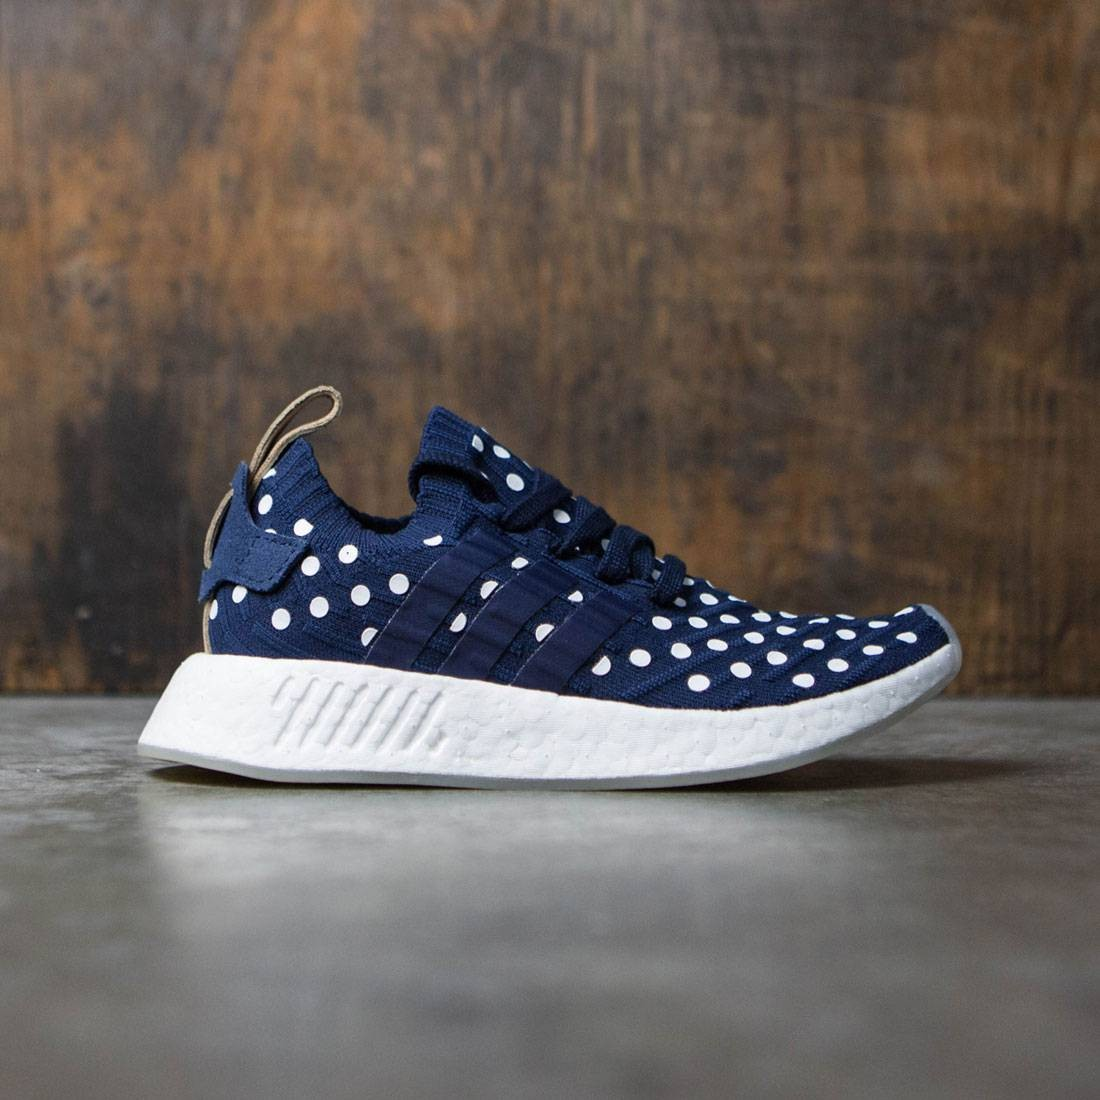 super popular 90f34 96989 Adidas Women NMD R2 Primeknit W (navy / collegiate navy / footwear white)